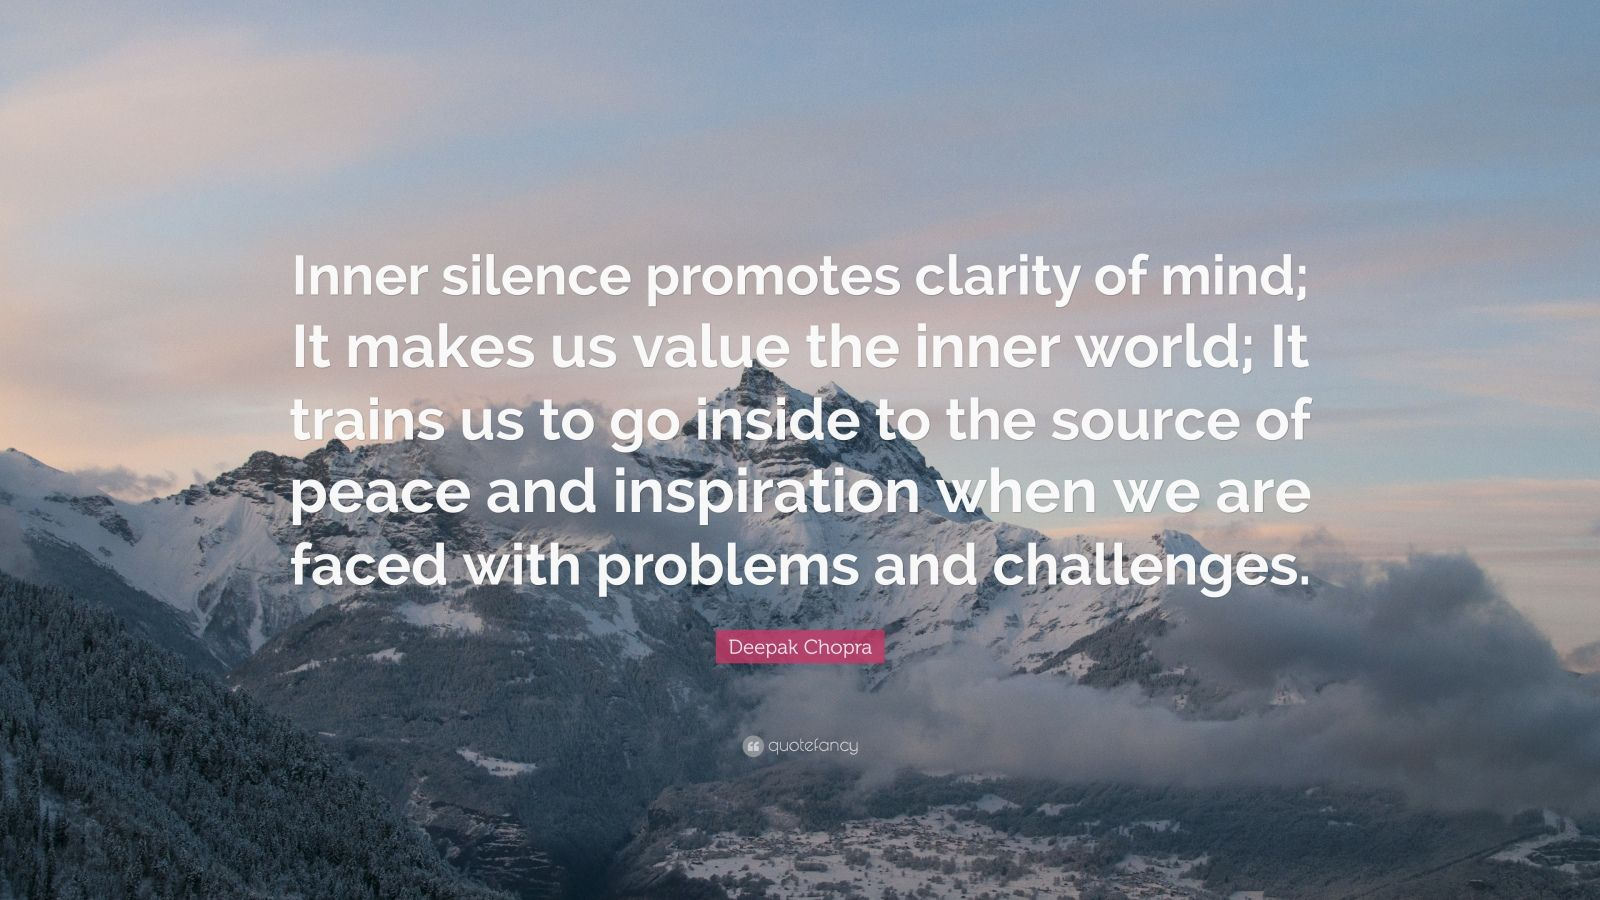 I Love Myself Quotes Wallpapers Deepak Chopra Quote Inner Silence Promotes Clarity Of